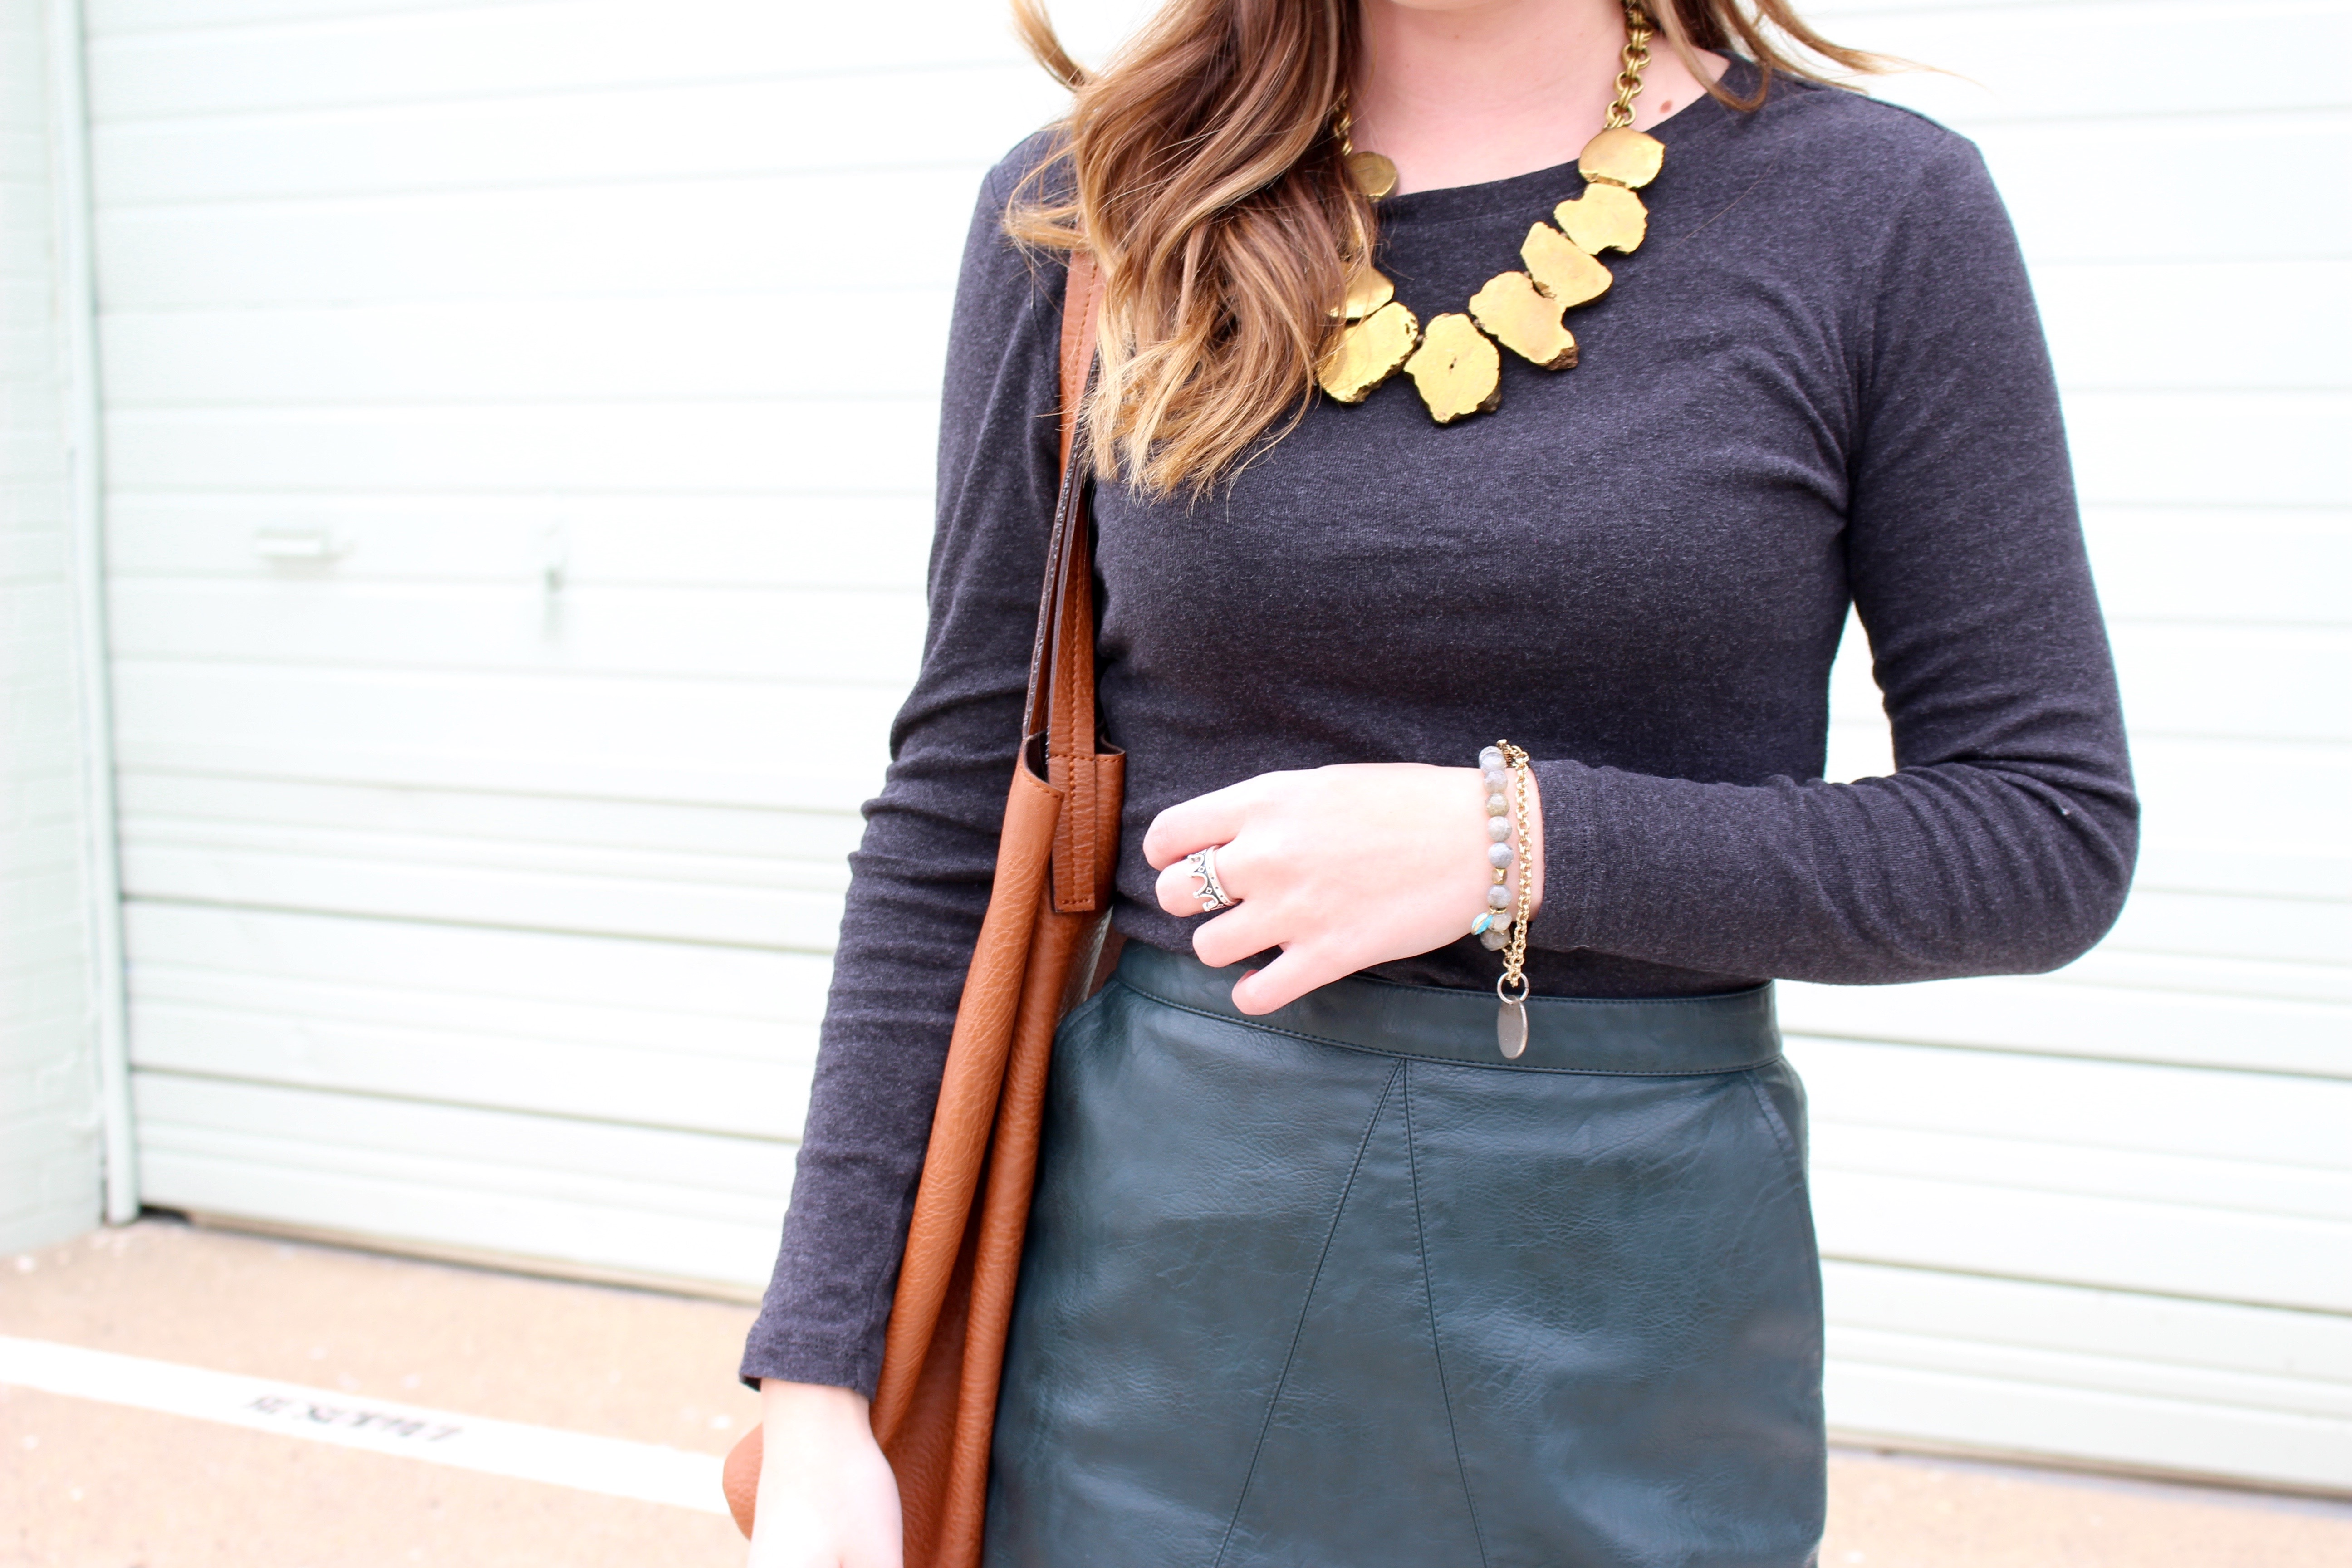 green leather versatile skirt - Green Leather Skirt by popular Texas fashion blogger Audrey Madison Stowe